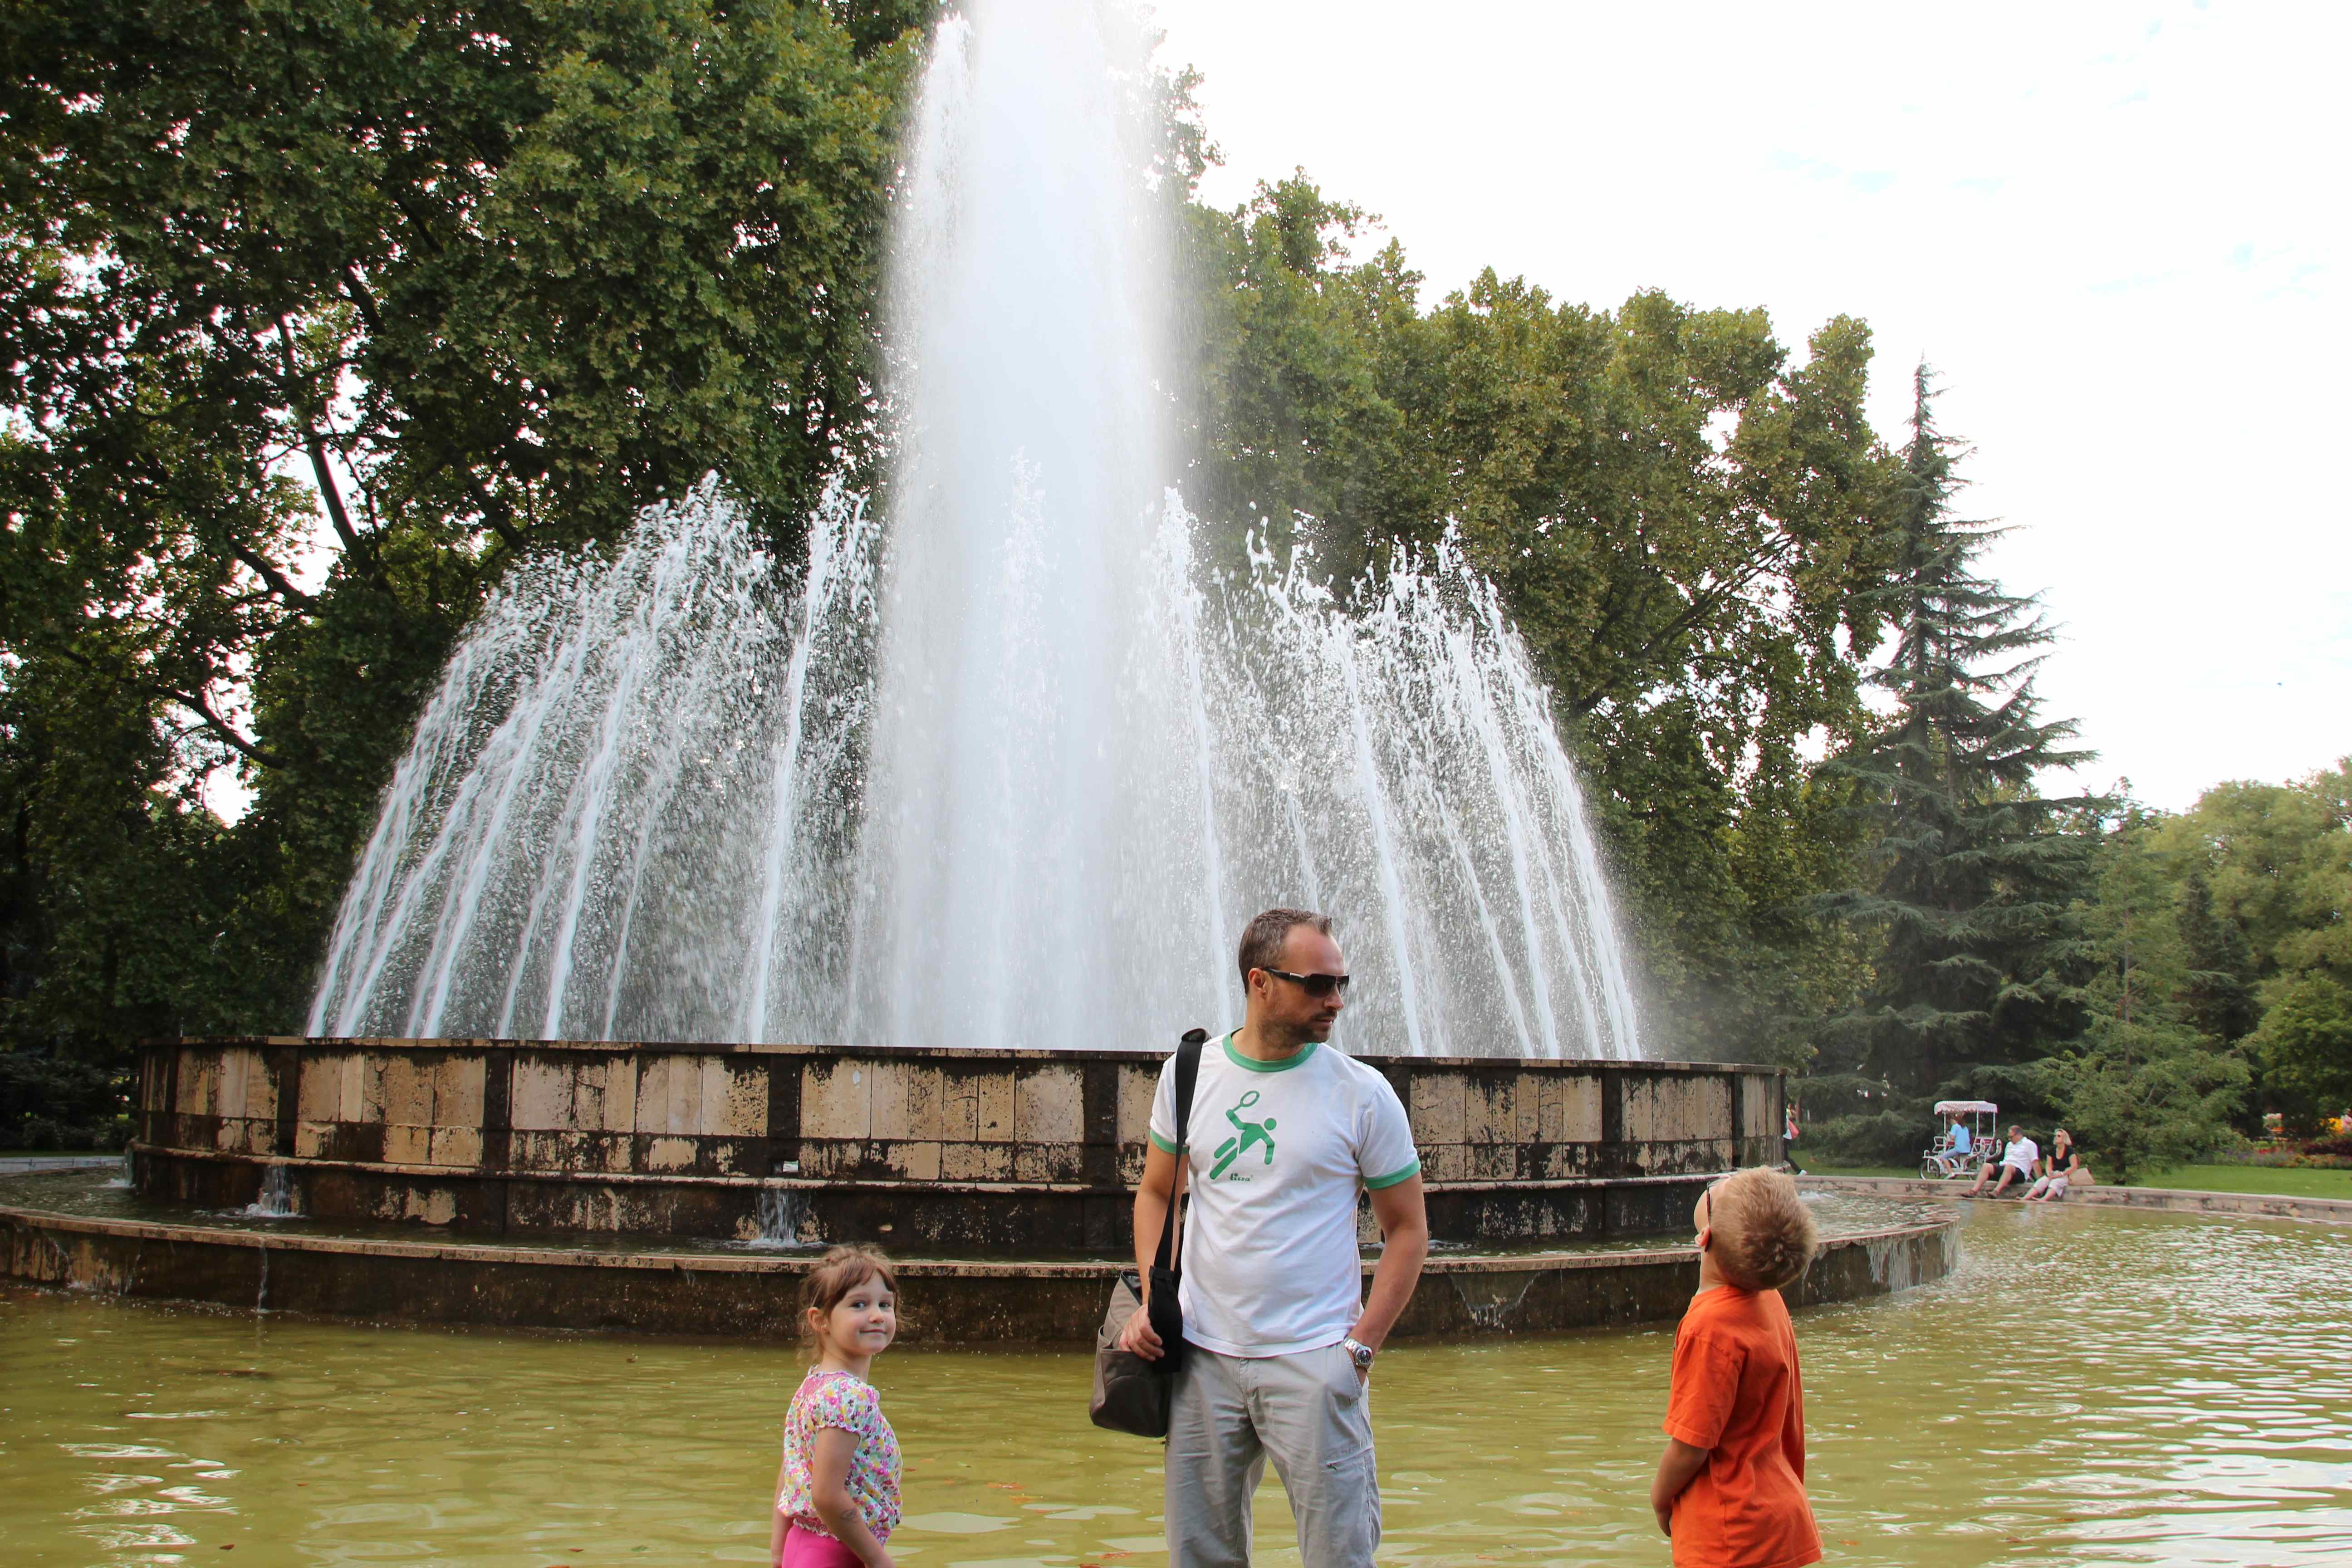 city park fountains Budapest